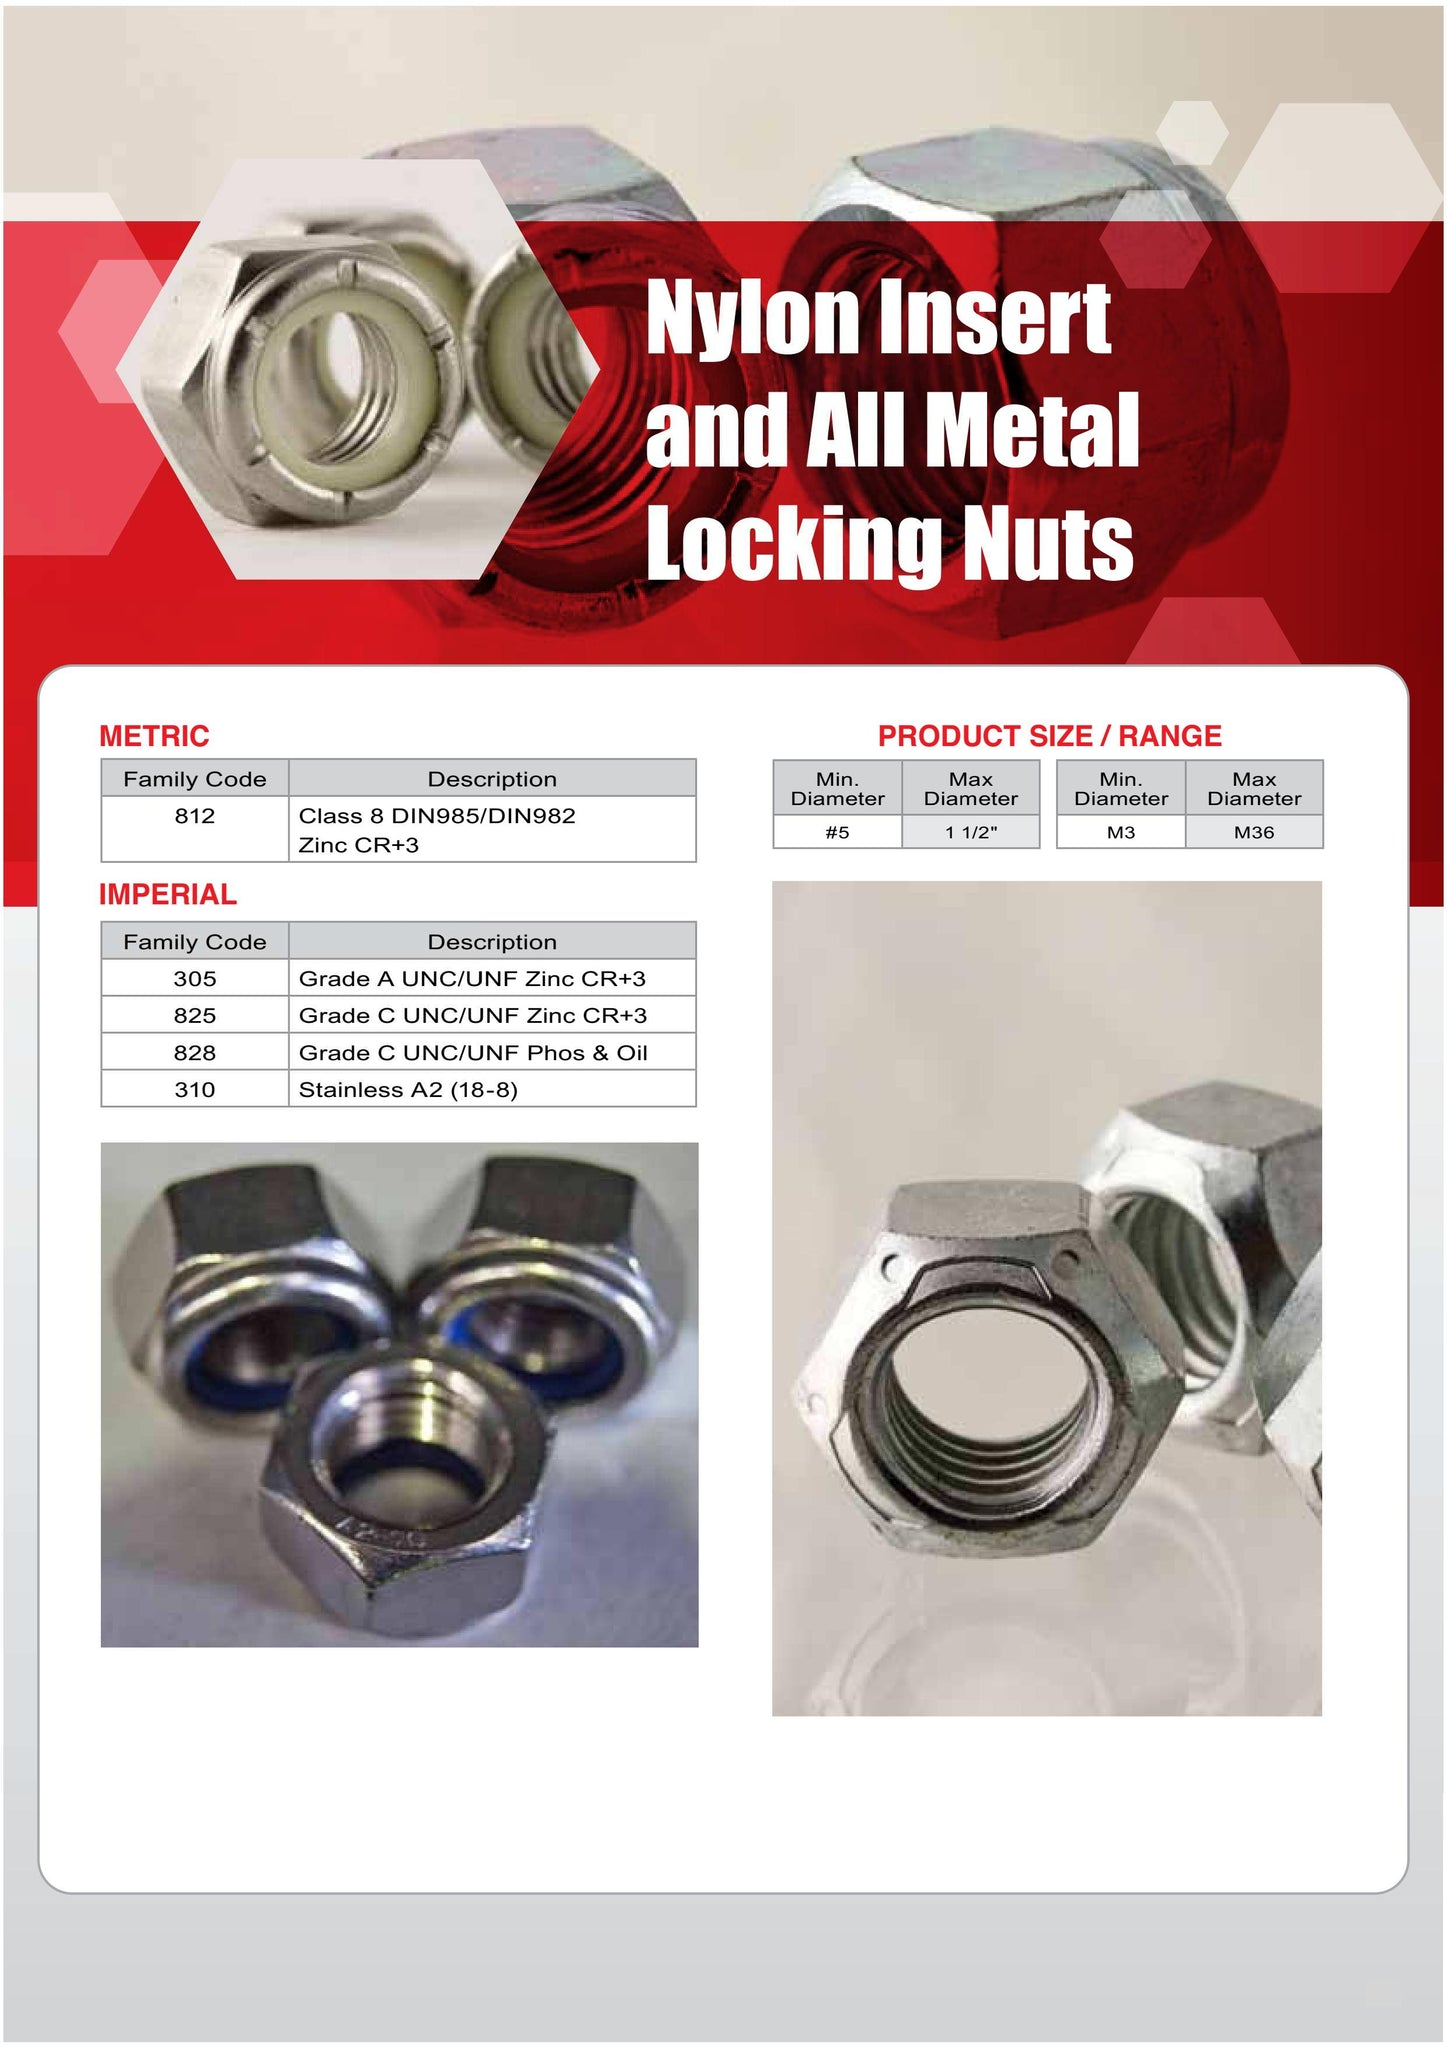 Nylon Insert and All Metal Locking Nuts